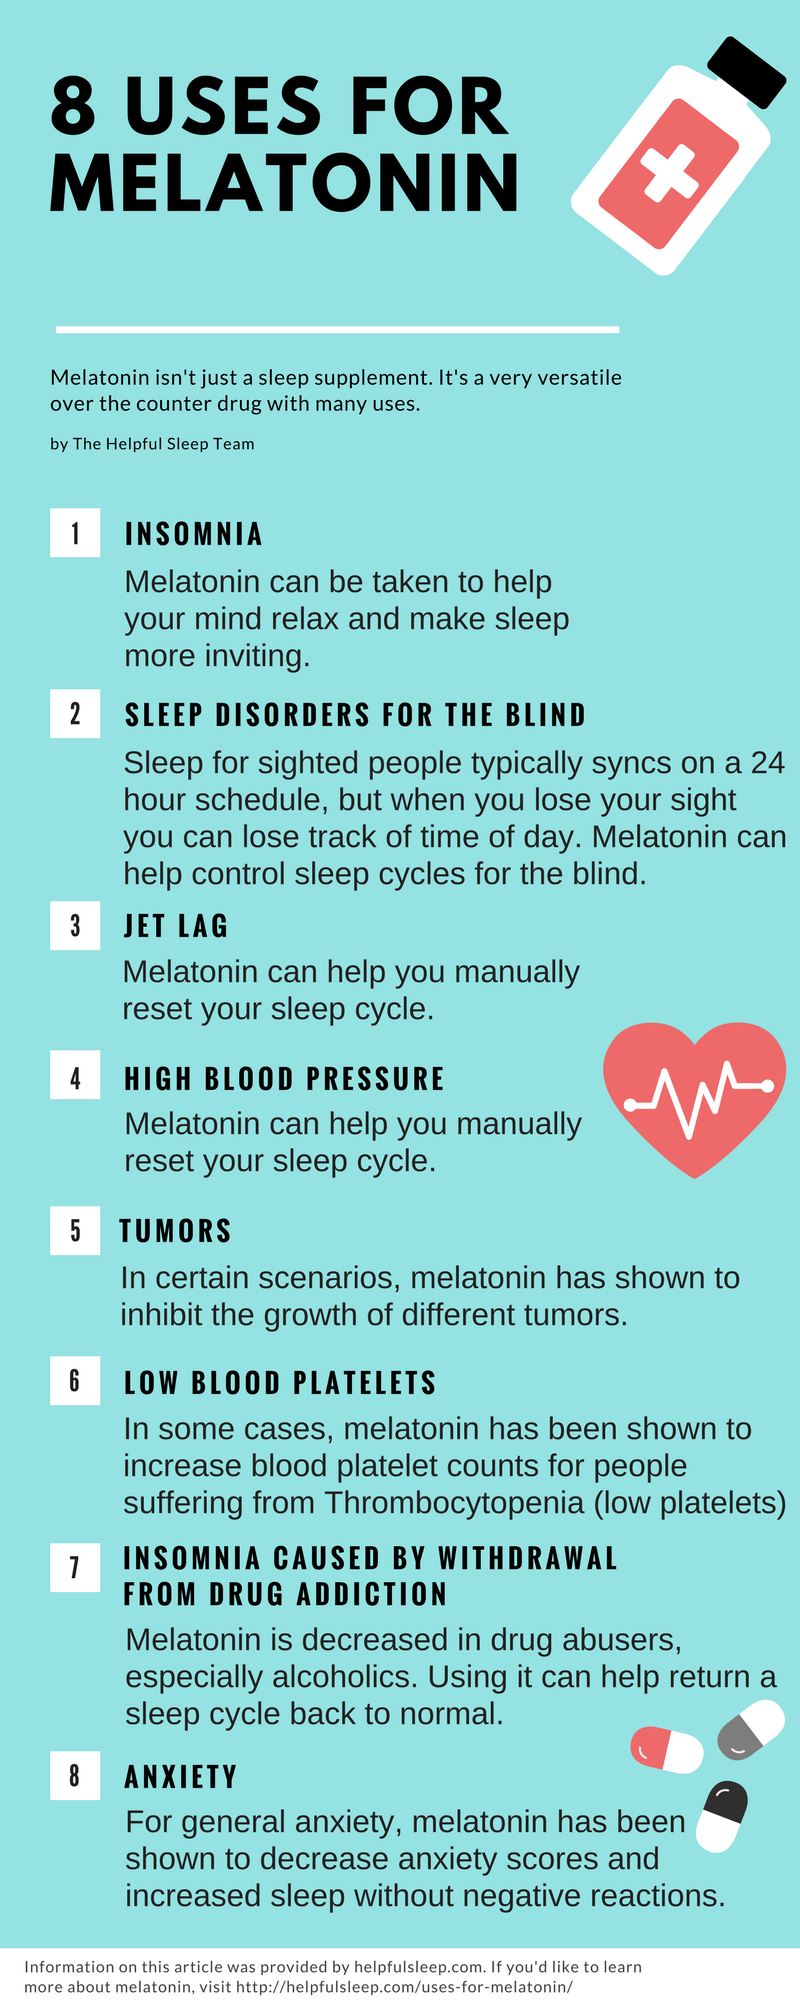 8 USES FOR MELATONIN